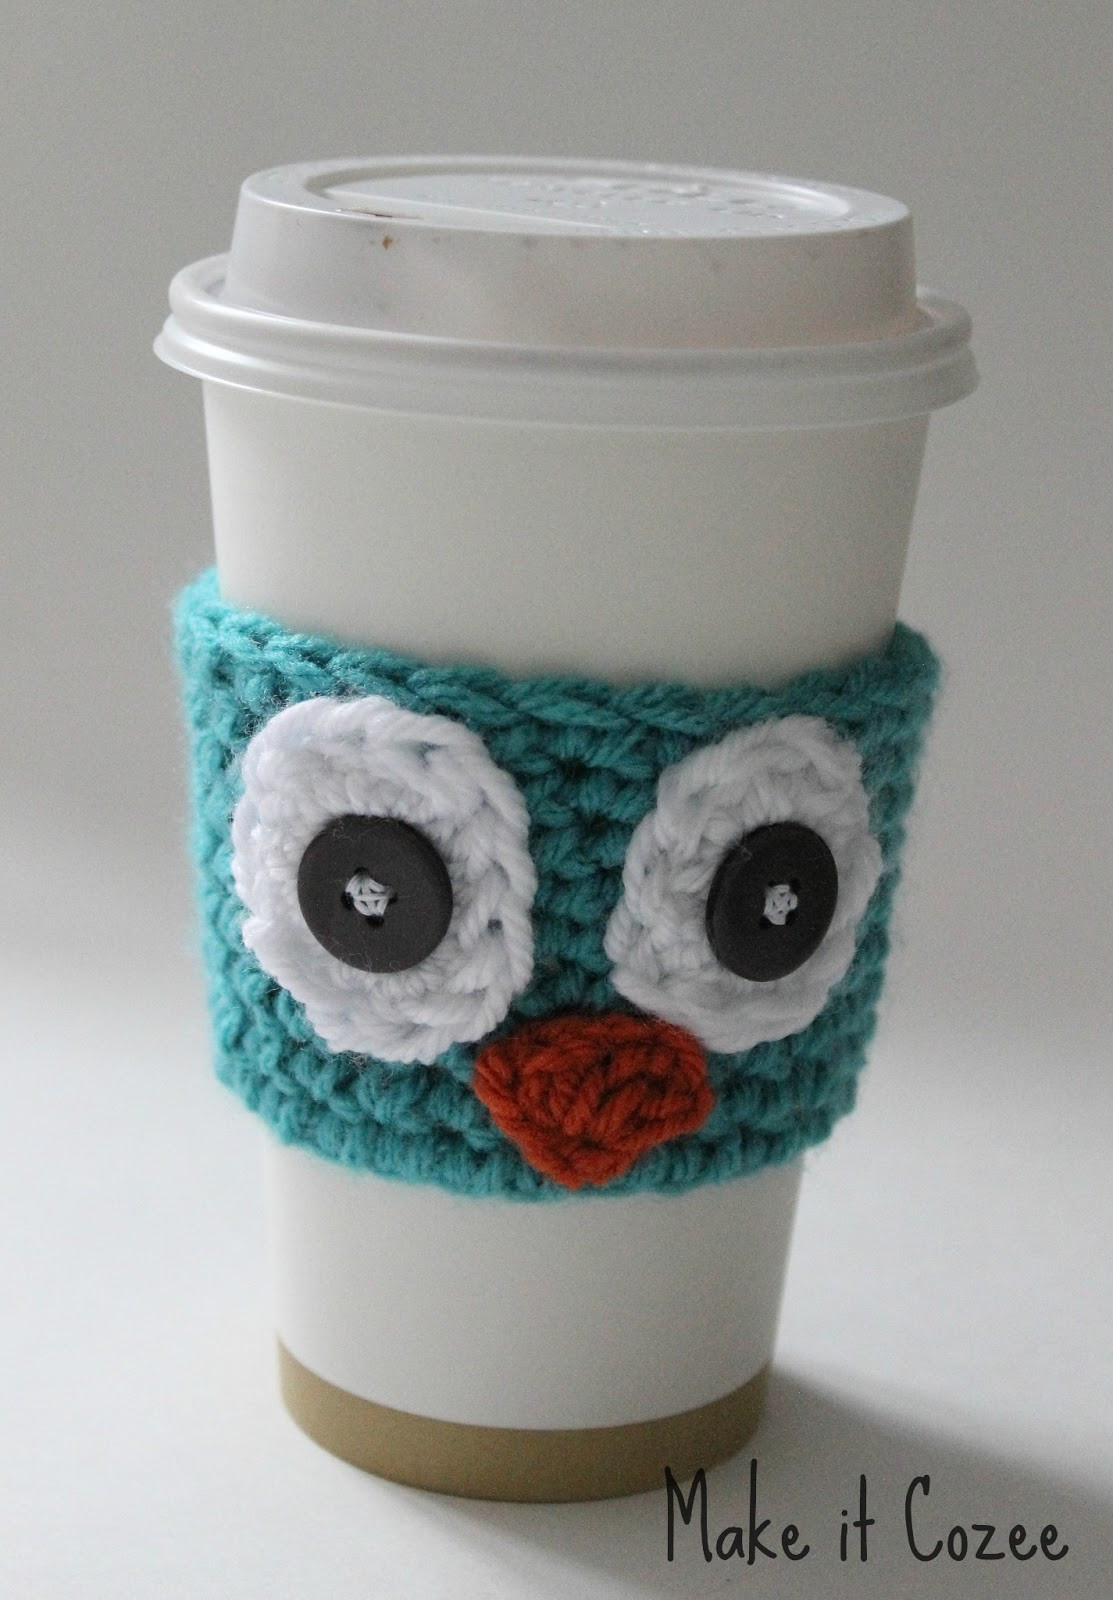 Crochet Coffee Cup Cozy Inspirational Make It Cozee Crochet Owl Coffee Cozy Of Crochet Coffee Cup Cozy Awesome Crochet Coffee Cozy Amy Latta Creations